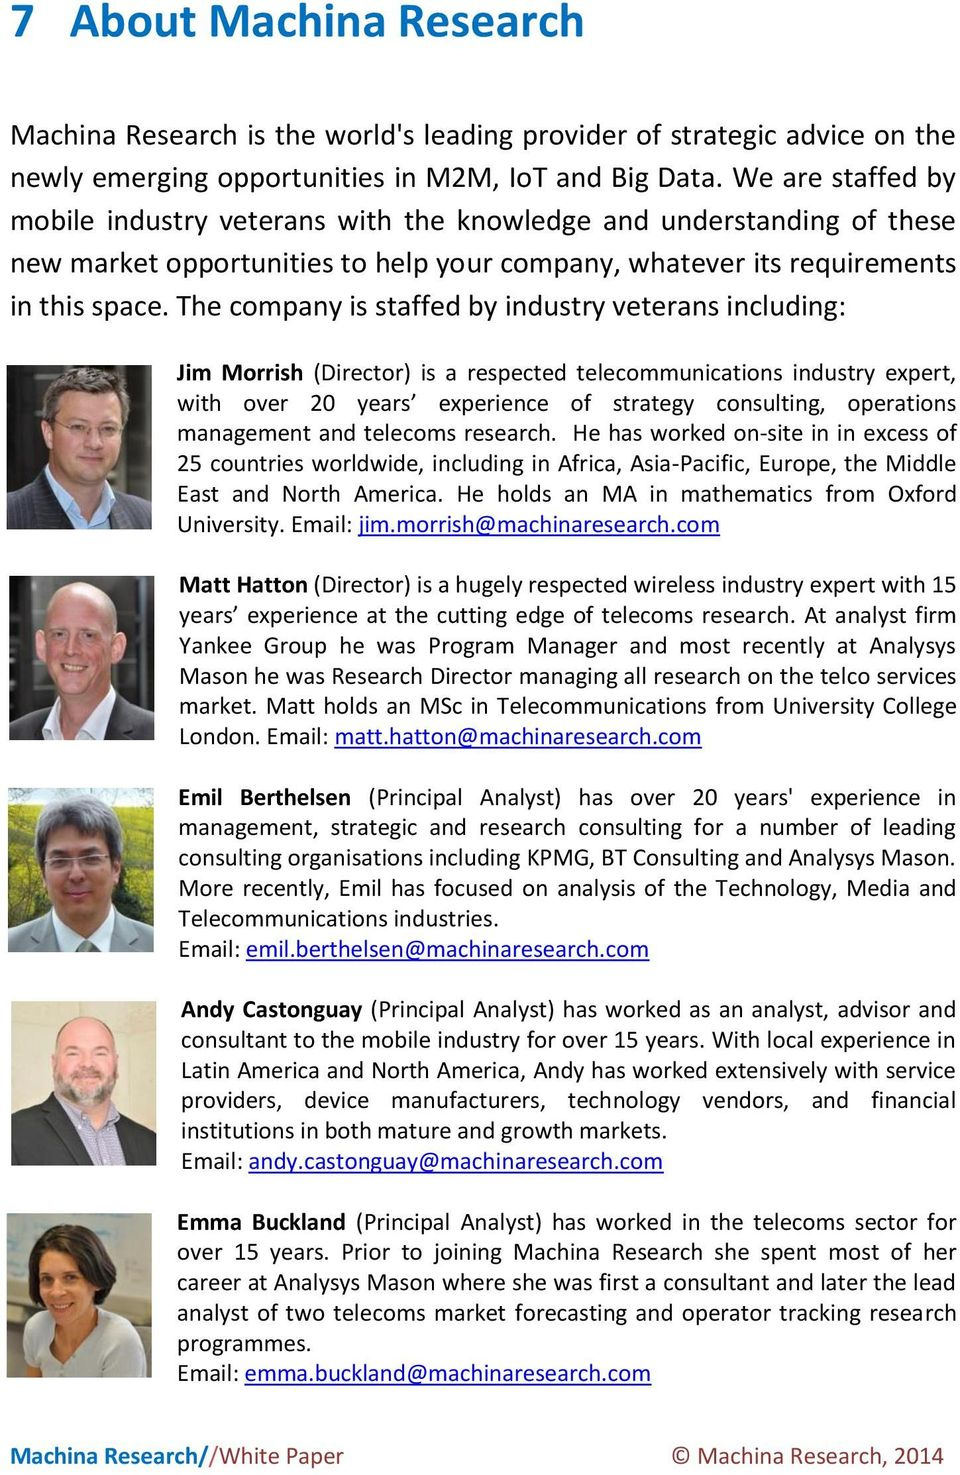 The company is staffed by industry veterans including: Jim Morrish (Director) is a respected telecommunications industry expert, with over 20 years experience of strategy consulting, operations